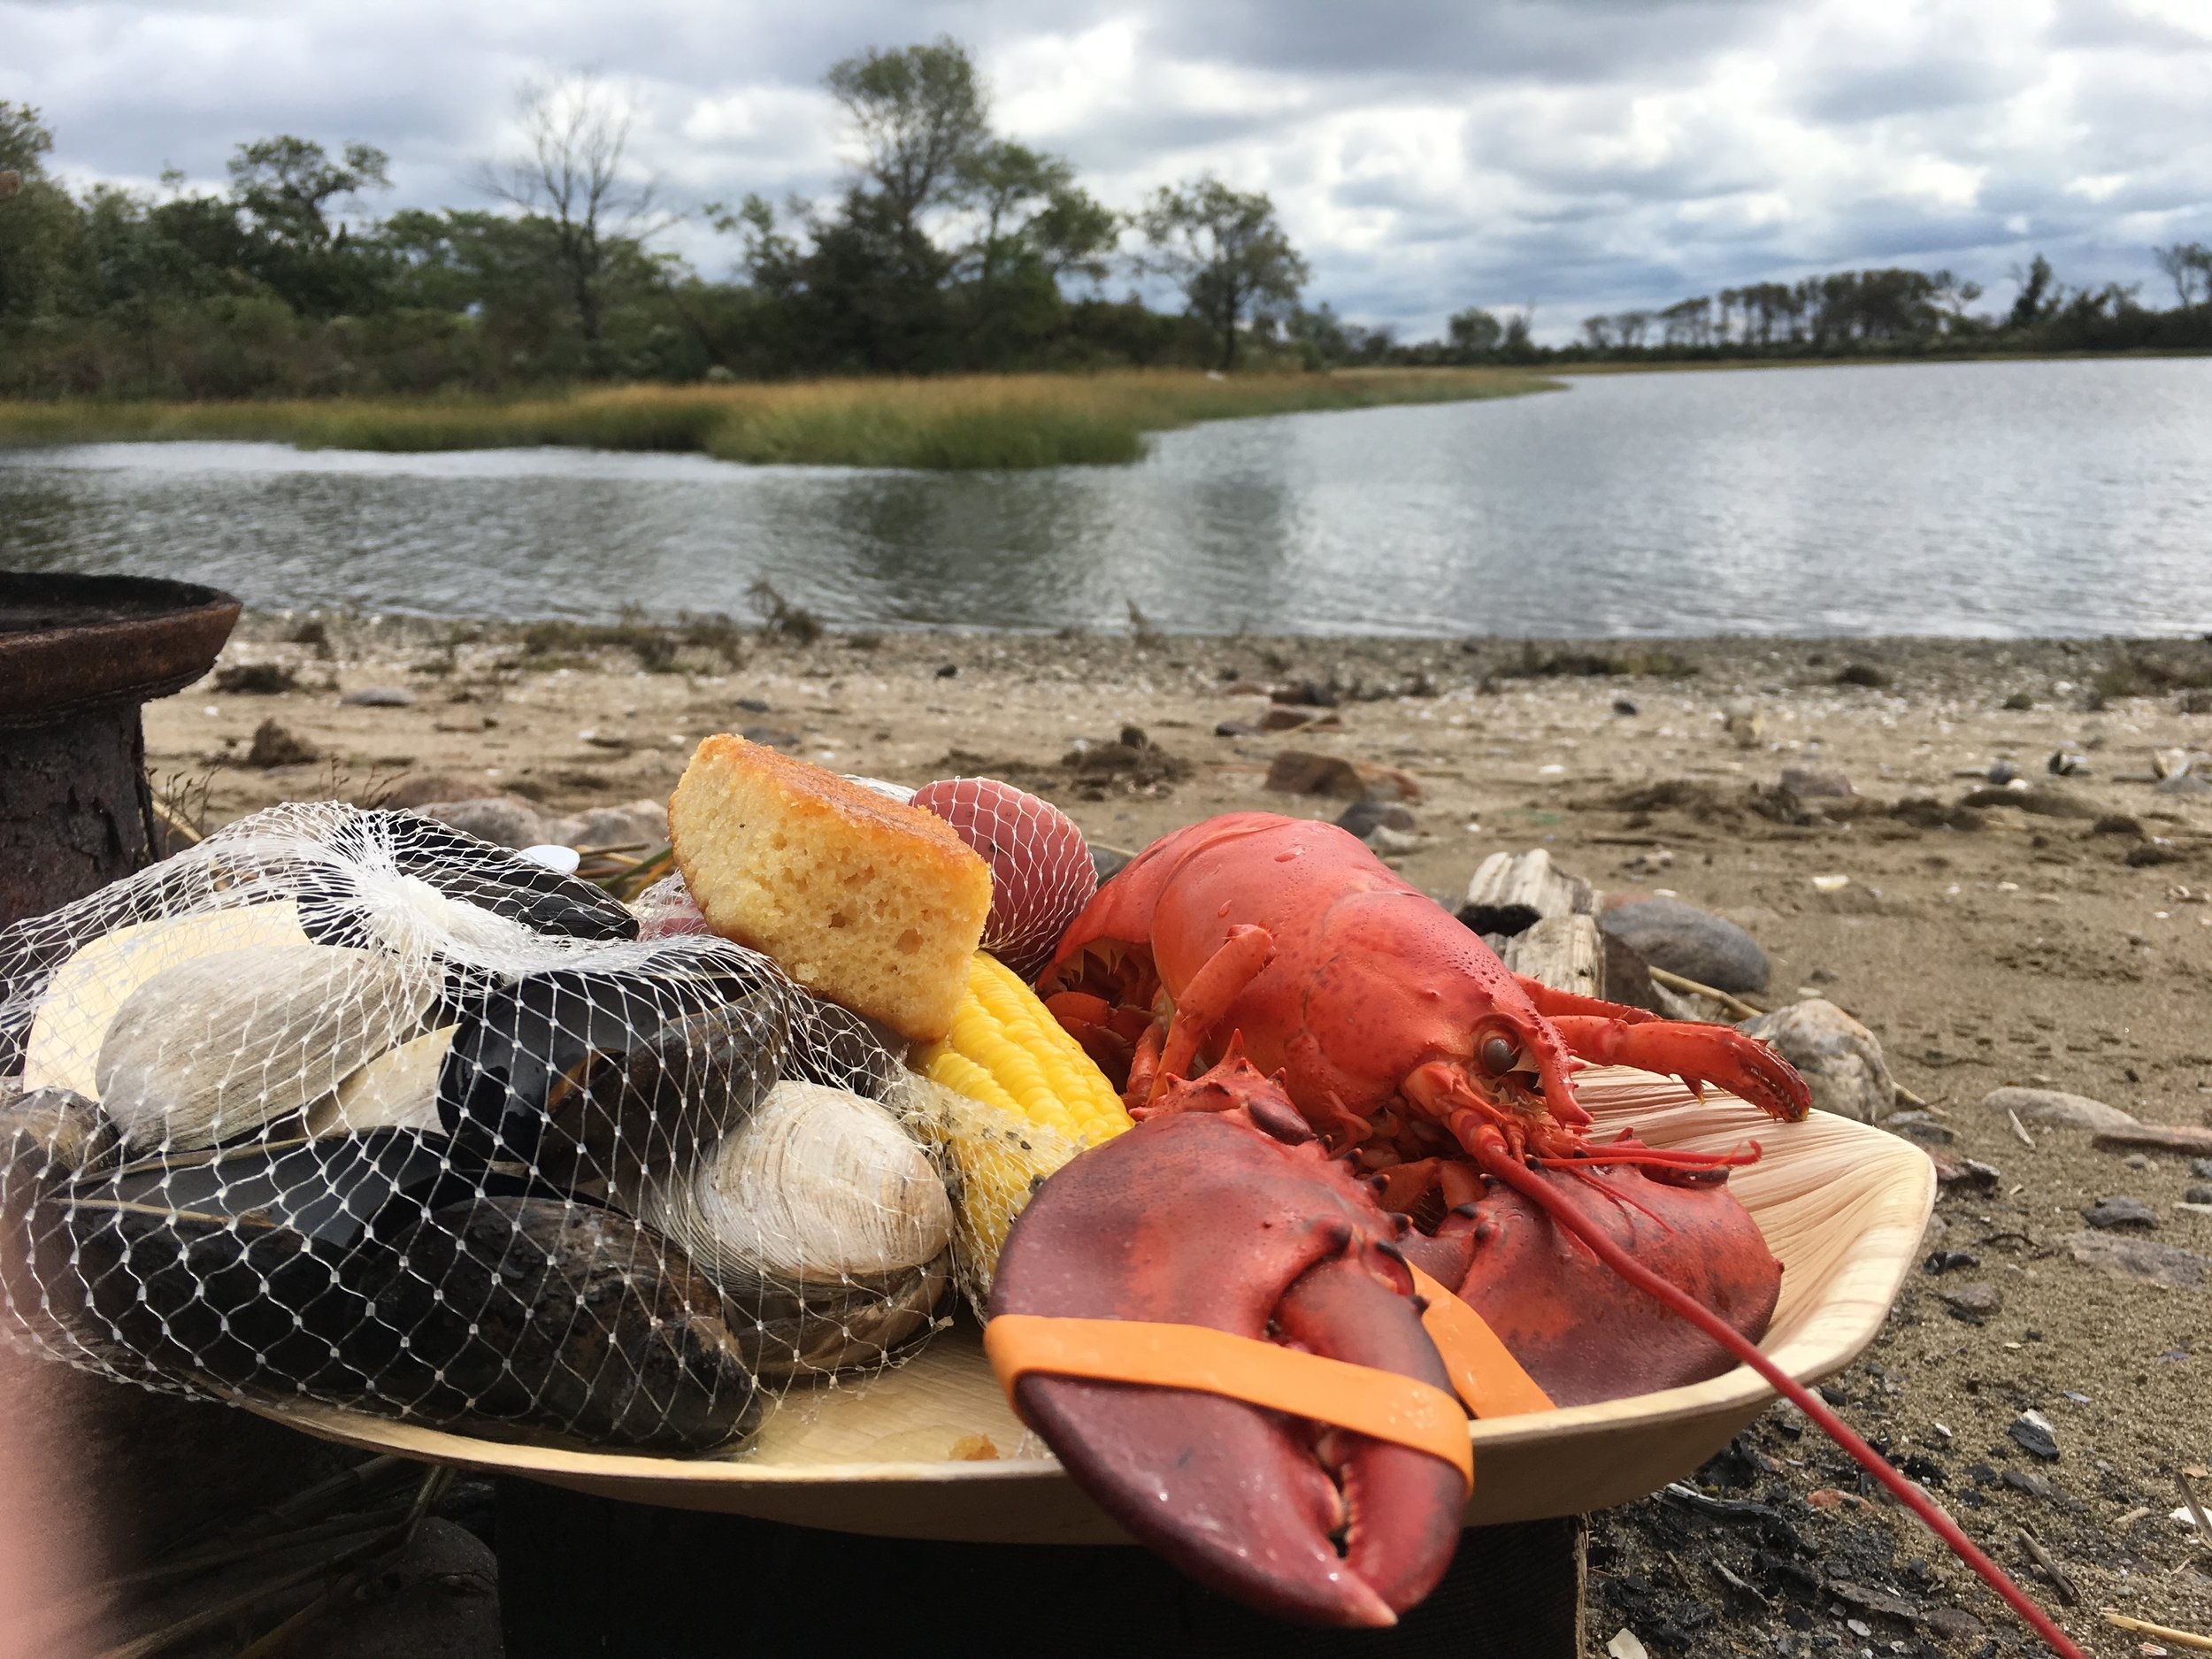 Sept 14-15 |Bike & Kayak Clambake - Your time in New England isn't complete until you have kayaked to a private island clambake and explored the Long Island Sound on an electric bike.